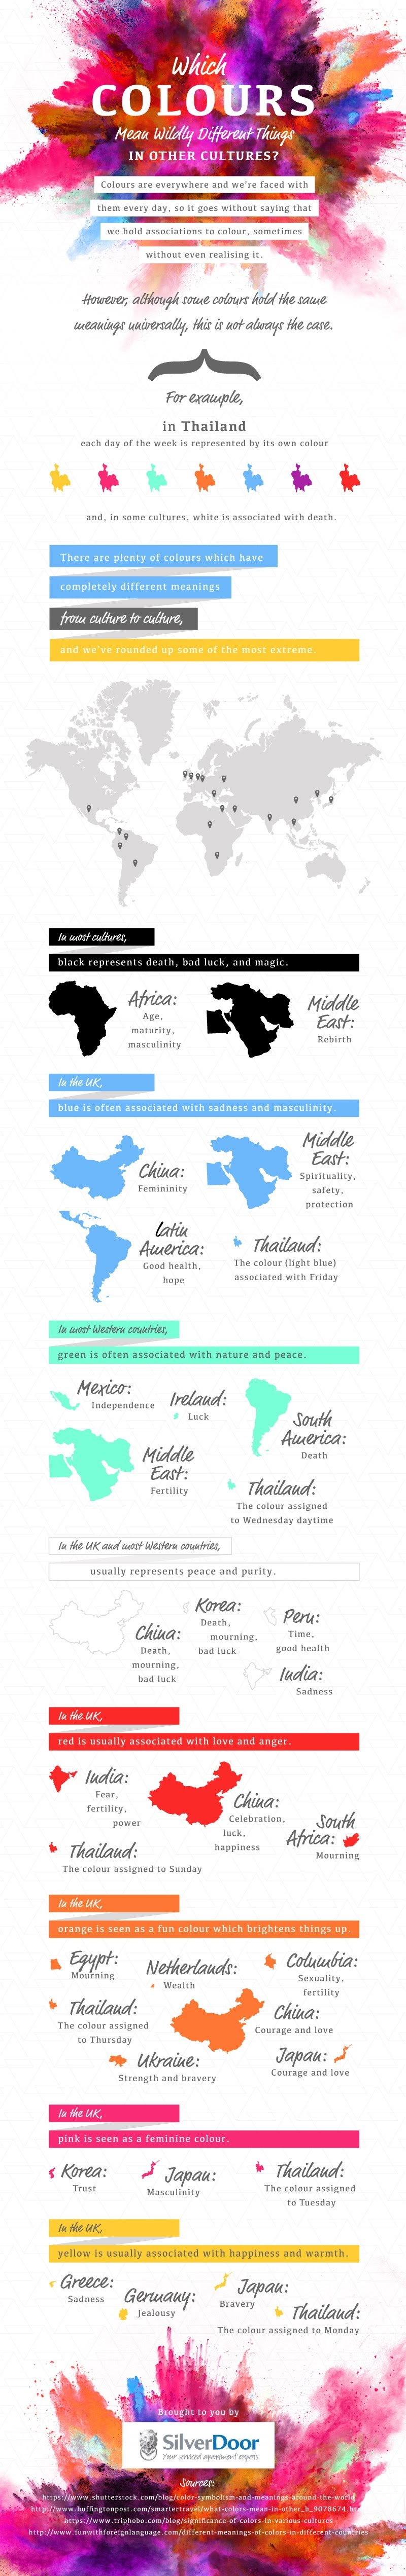 Which Colours Mean Wildly Different Things In Other Cultures? - #Infographic